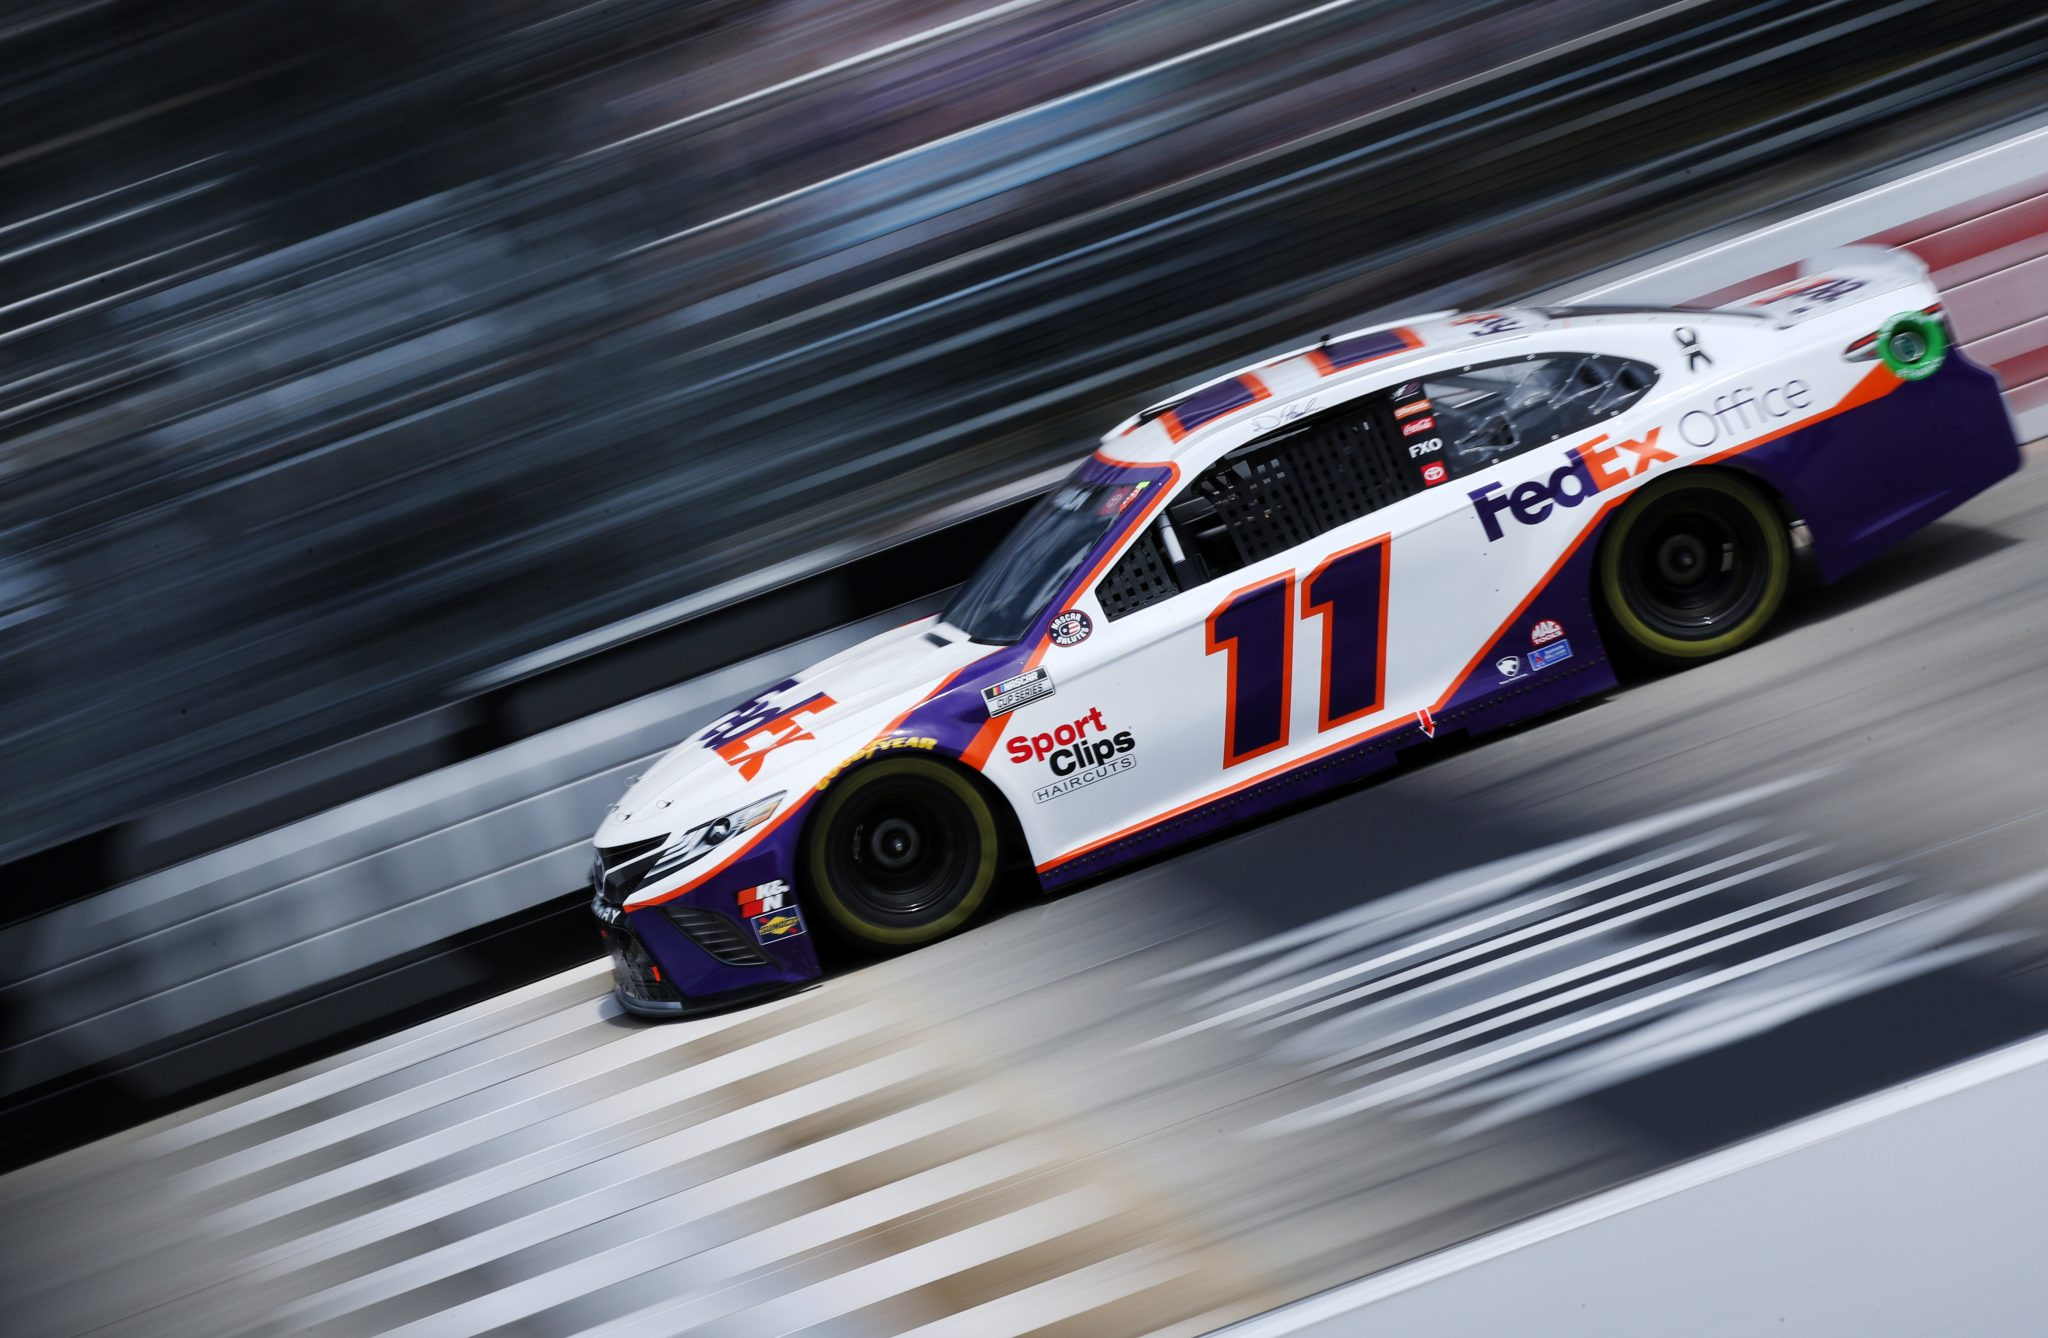 DOVER, DELAWARE - MAY 16: Denny Hamlin, driver of the #11 FedEx Office Toyota, races during the NASCAR Cup Series Drydene 400 at Dover International Speedway on May 16, 2021 in Dover, Delaware. (Photo by Sean Gardner/Getty Images) | Getty Images